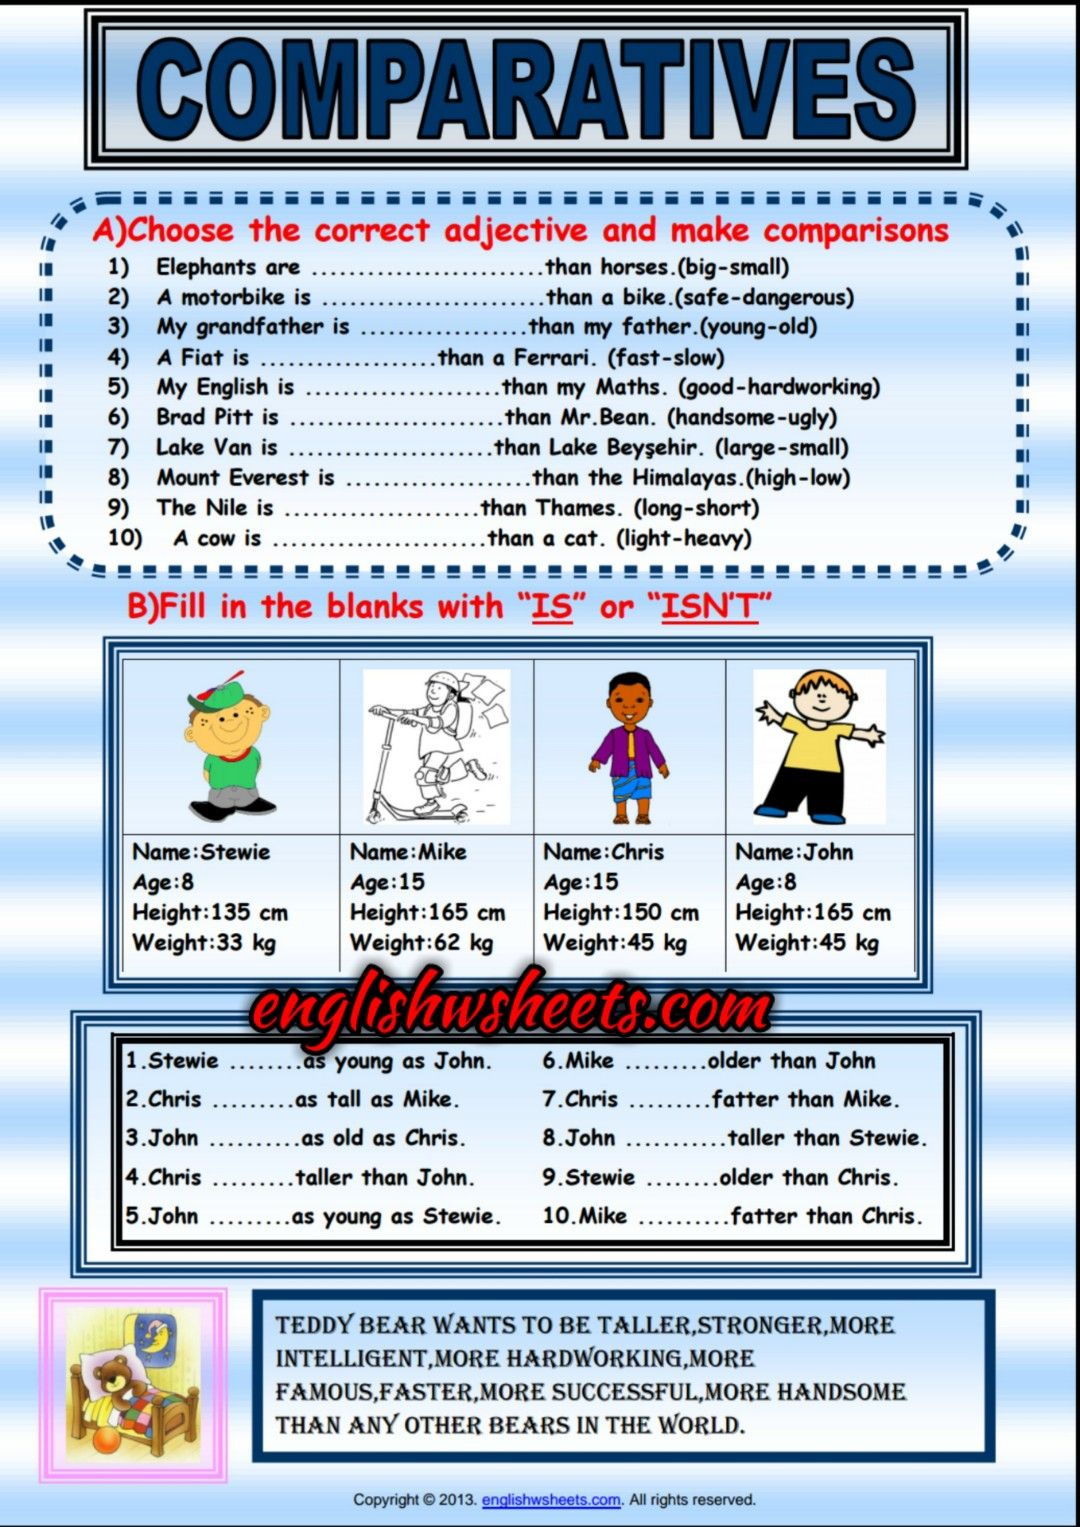 Comparative Forms Of Adjectives Exercises Handout For Kids Adjectives Grammar For Kids Adjectives Exercises Kinds of adjectives worksheets for